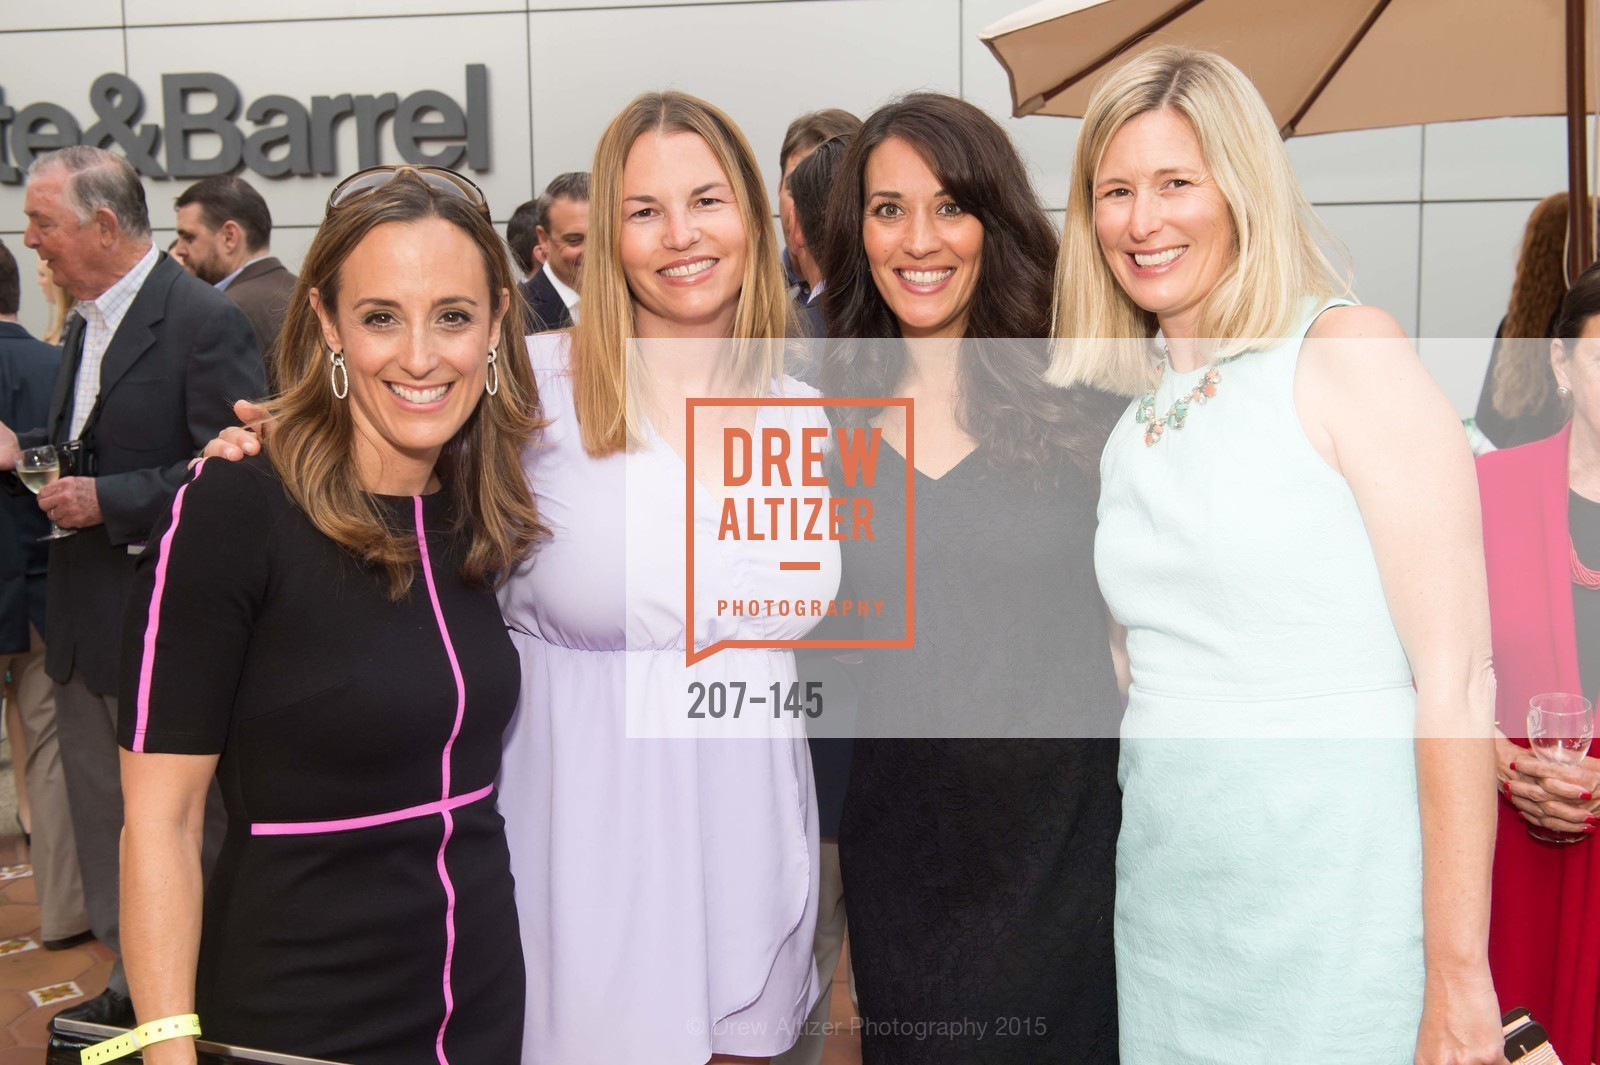 Jen Williams, Rachel Warner, Janelle Martin, Allison Penner, DREAMS HAPPEN: Playhouse Auction and Gala, Stanford Shopping Center, June 5th, 2015,Drew Altizer, Drew Altizer Photography, full-service agency, private events, San Francisco photographer, photographer california